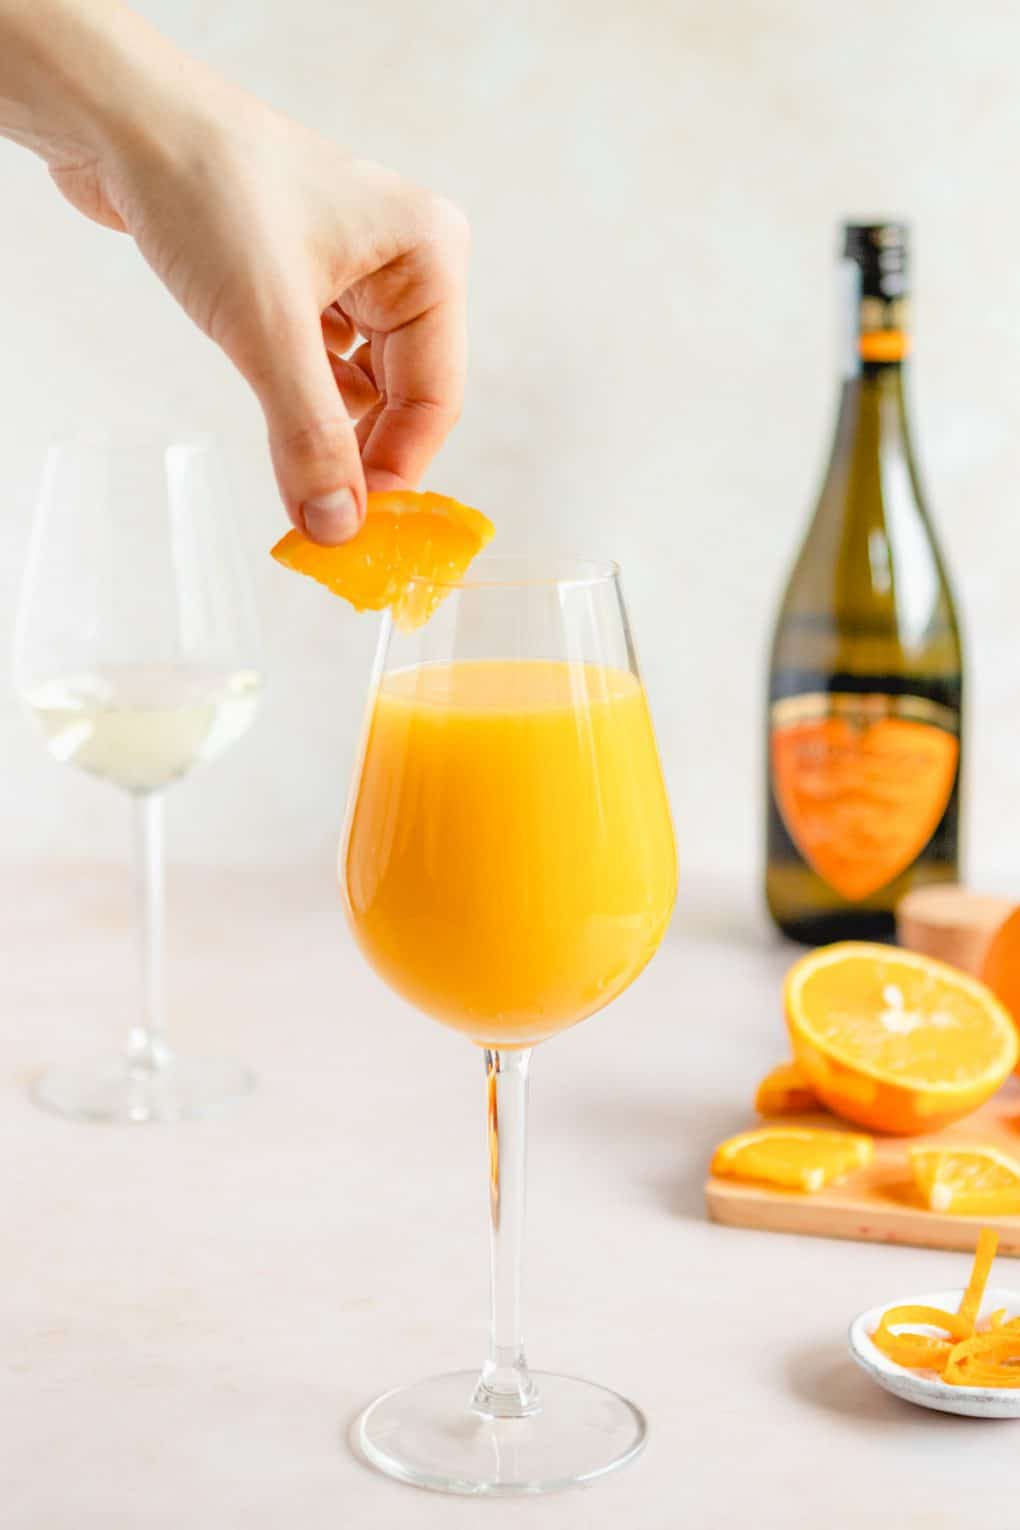 someone garnishing a classic mimosa glass with a slice of orange